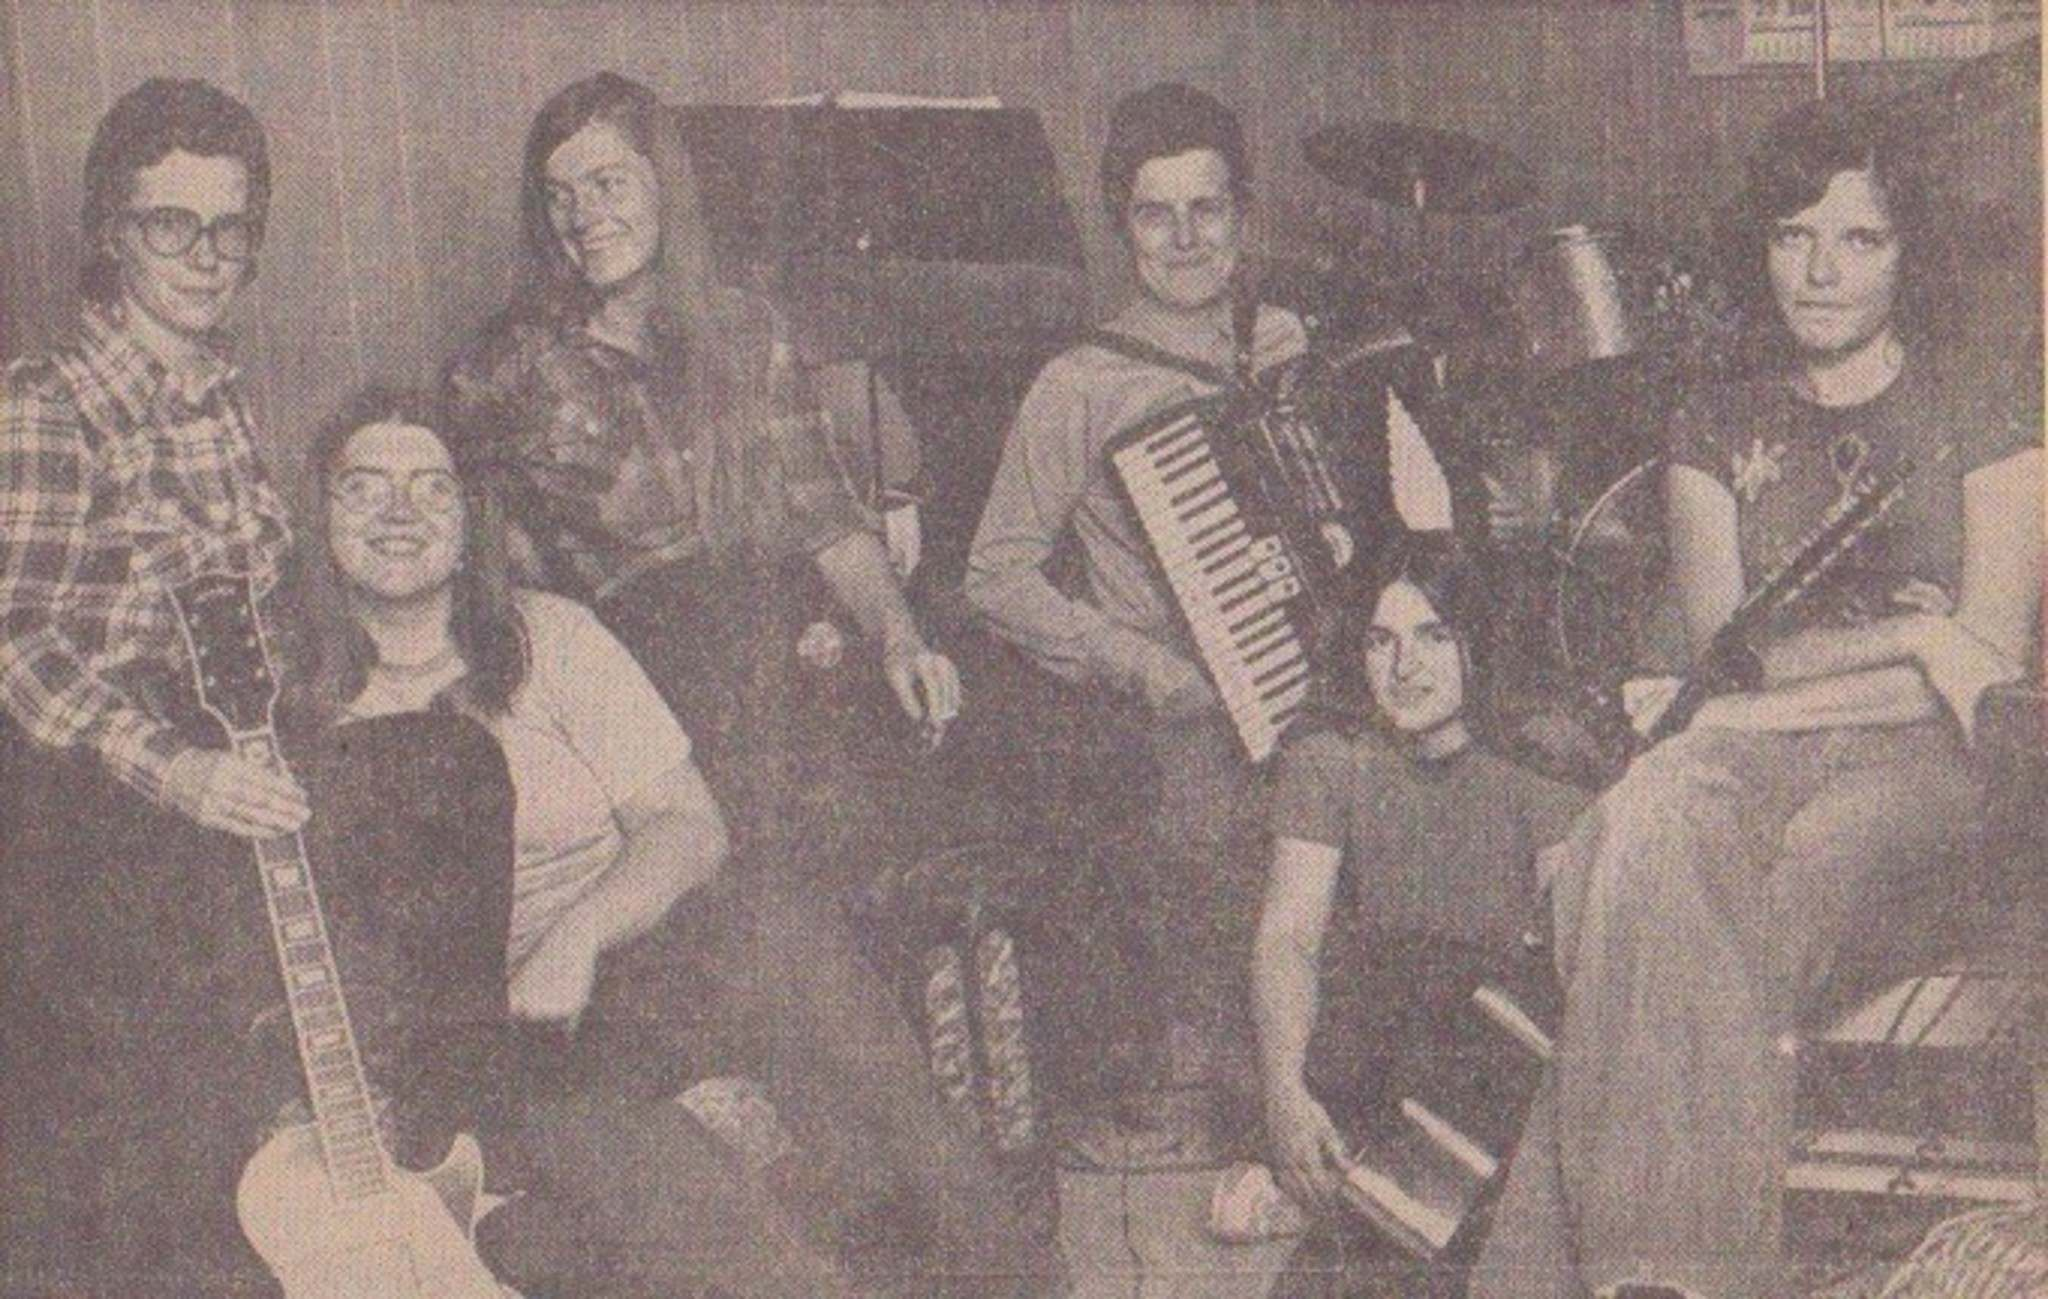 Supplied</p><p>Heather Bishop (left) and her all-female dance band Walpurgis Night in 1972.</p></p>